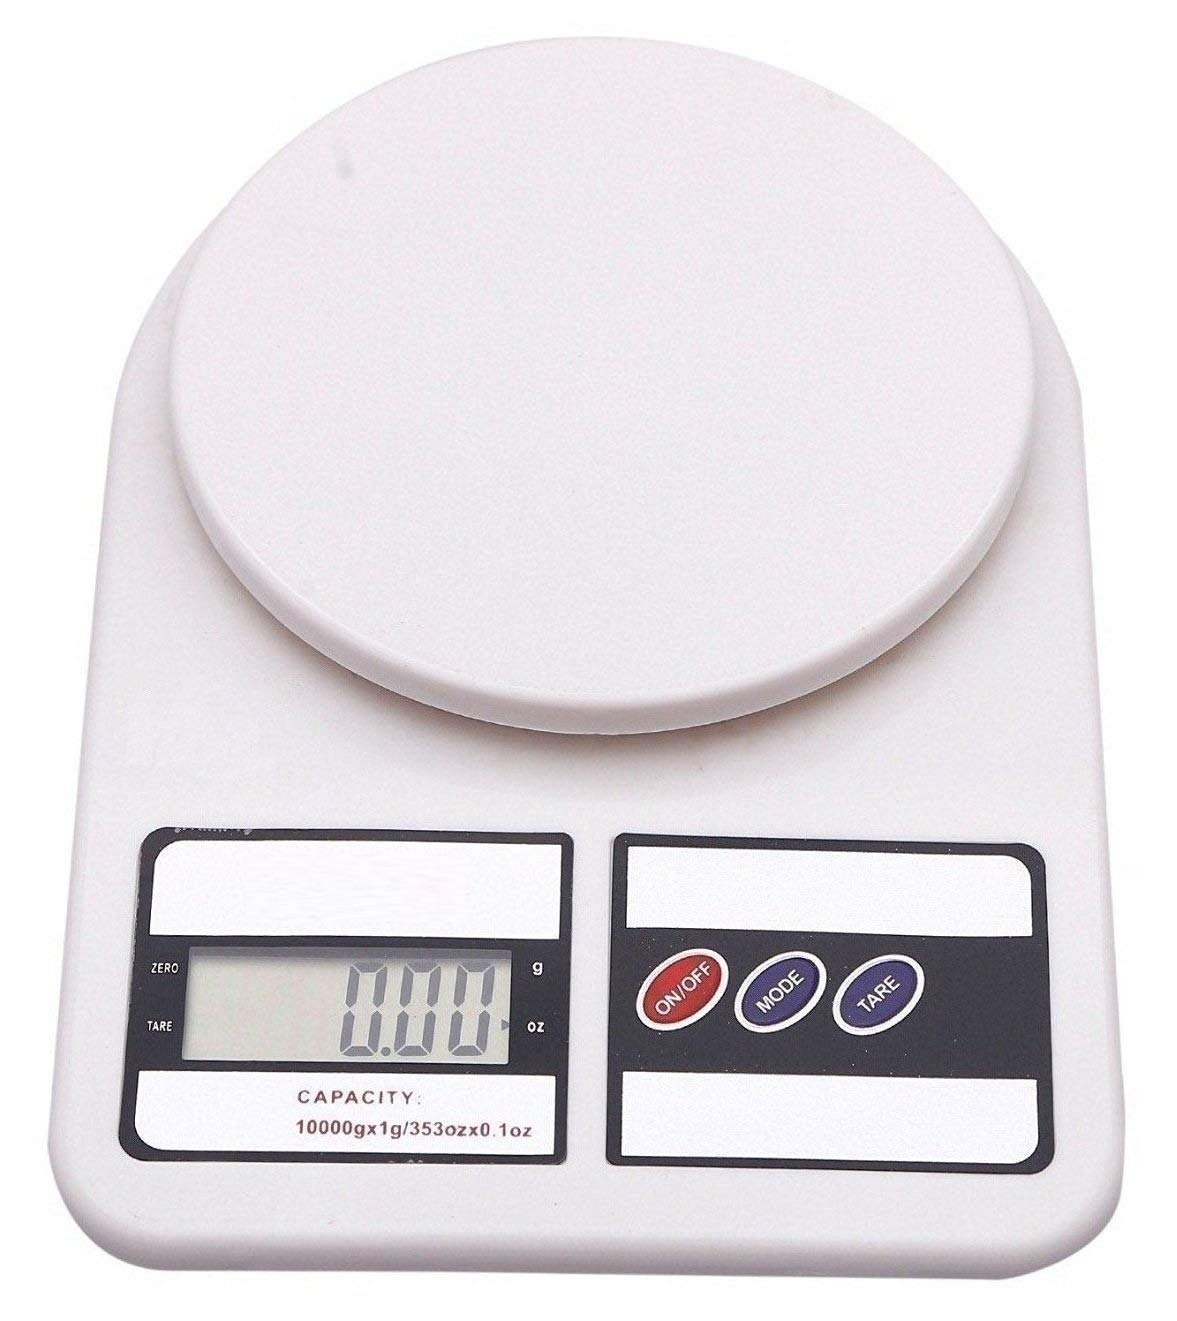 Generic Electronic Kitchen Digital Weighing Scale,